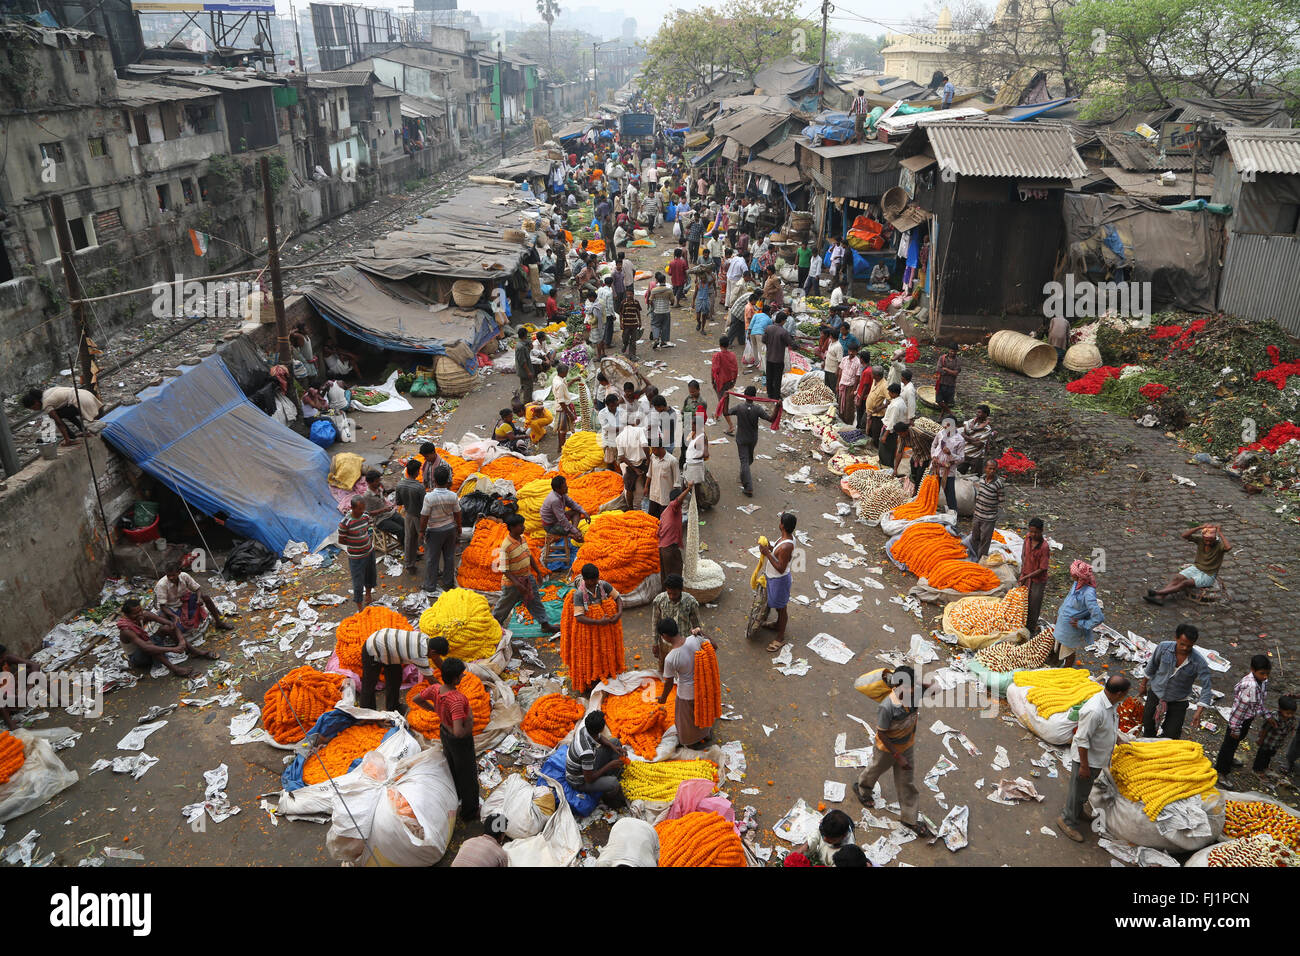 Crowd and people at the Kolkata Mullick ghat flower market , India - Stock Image